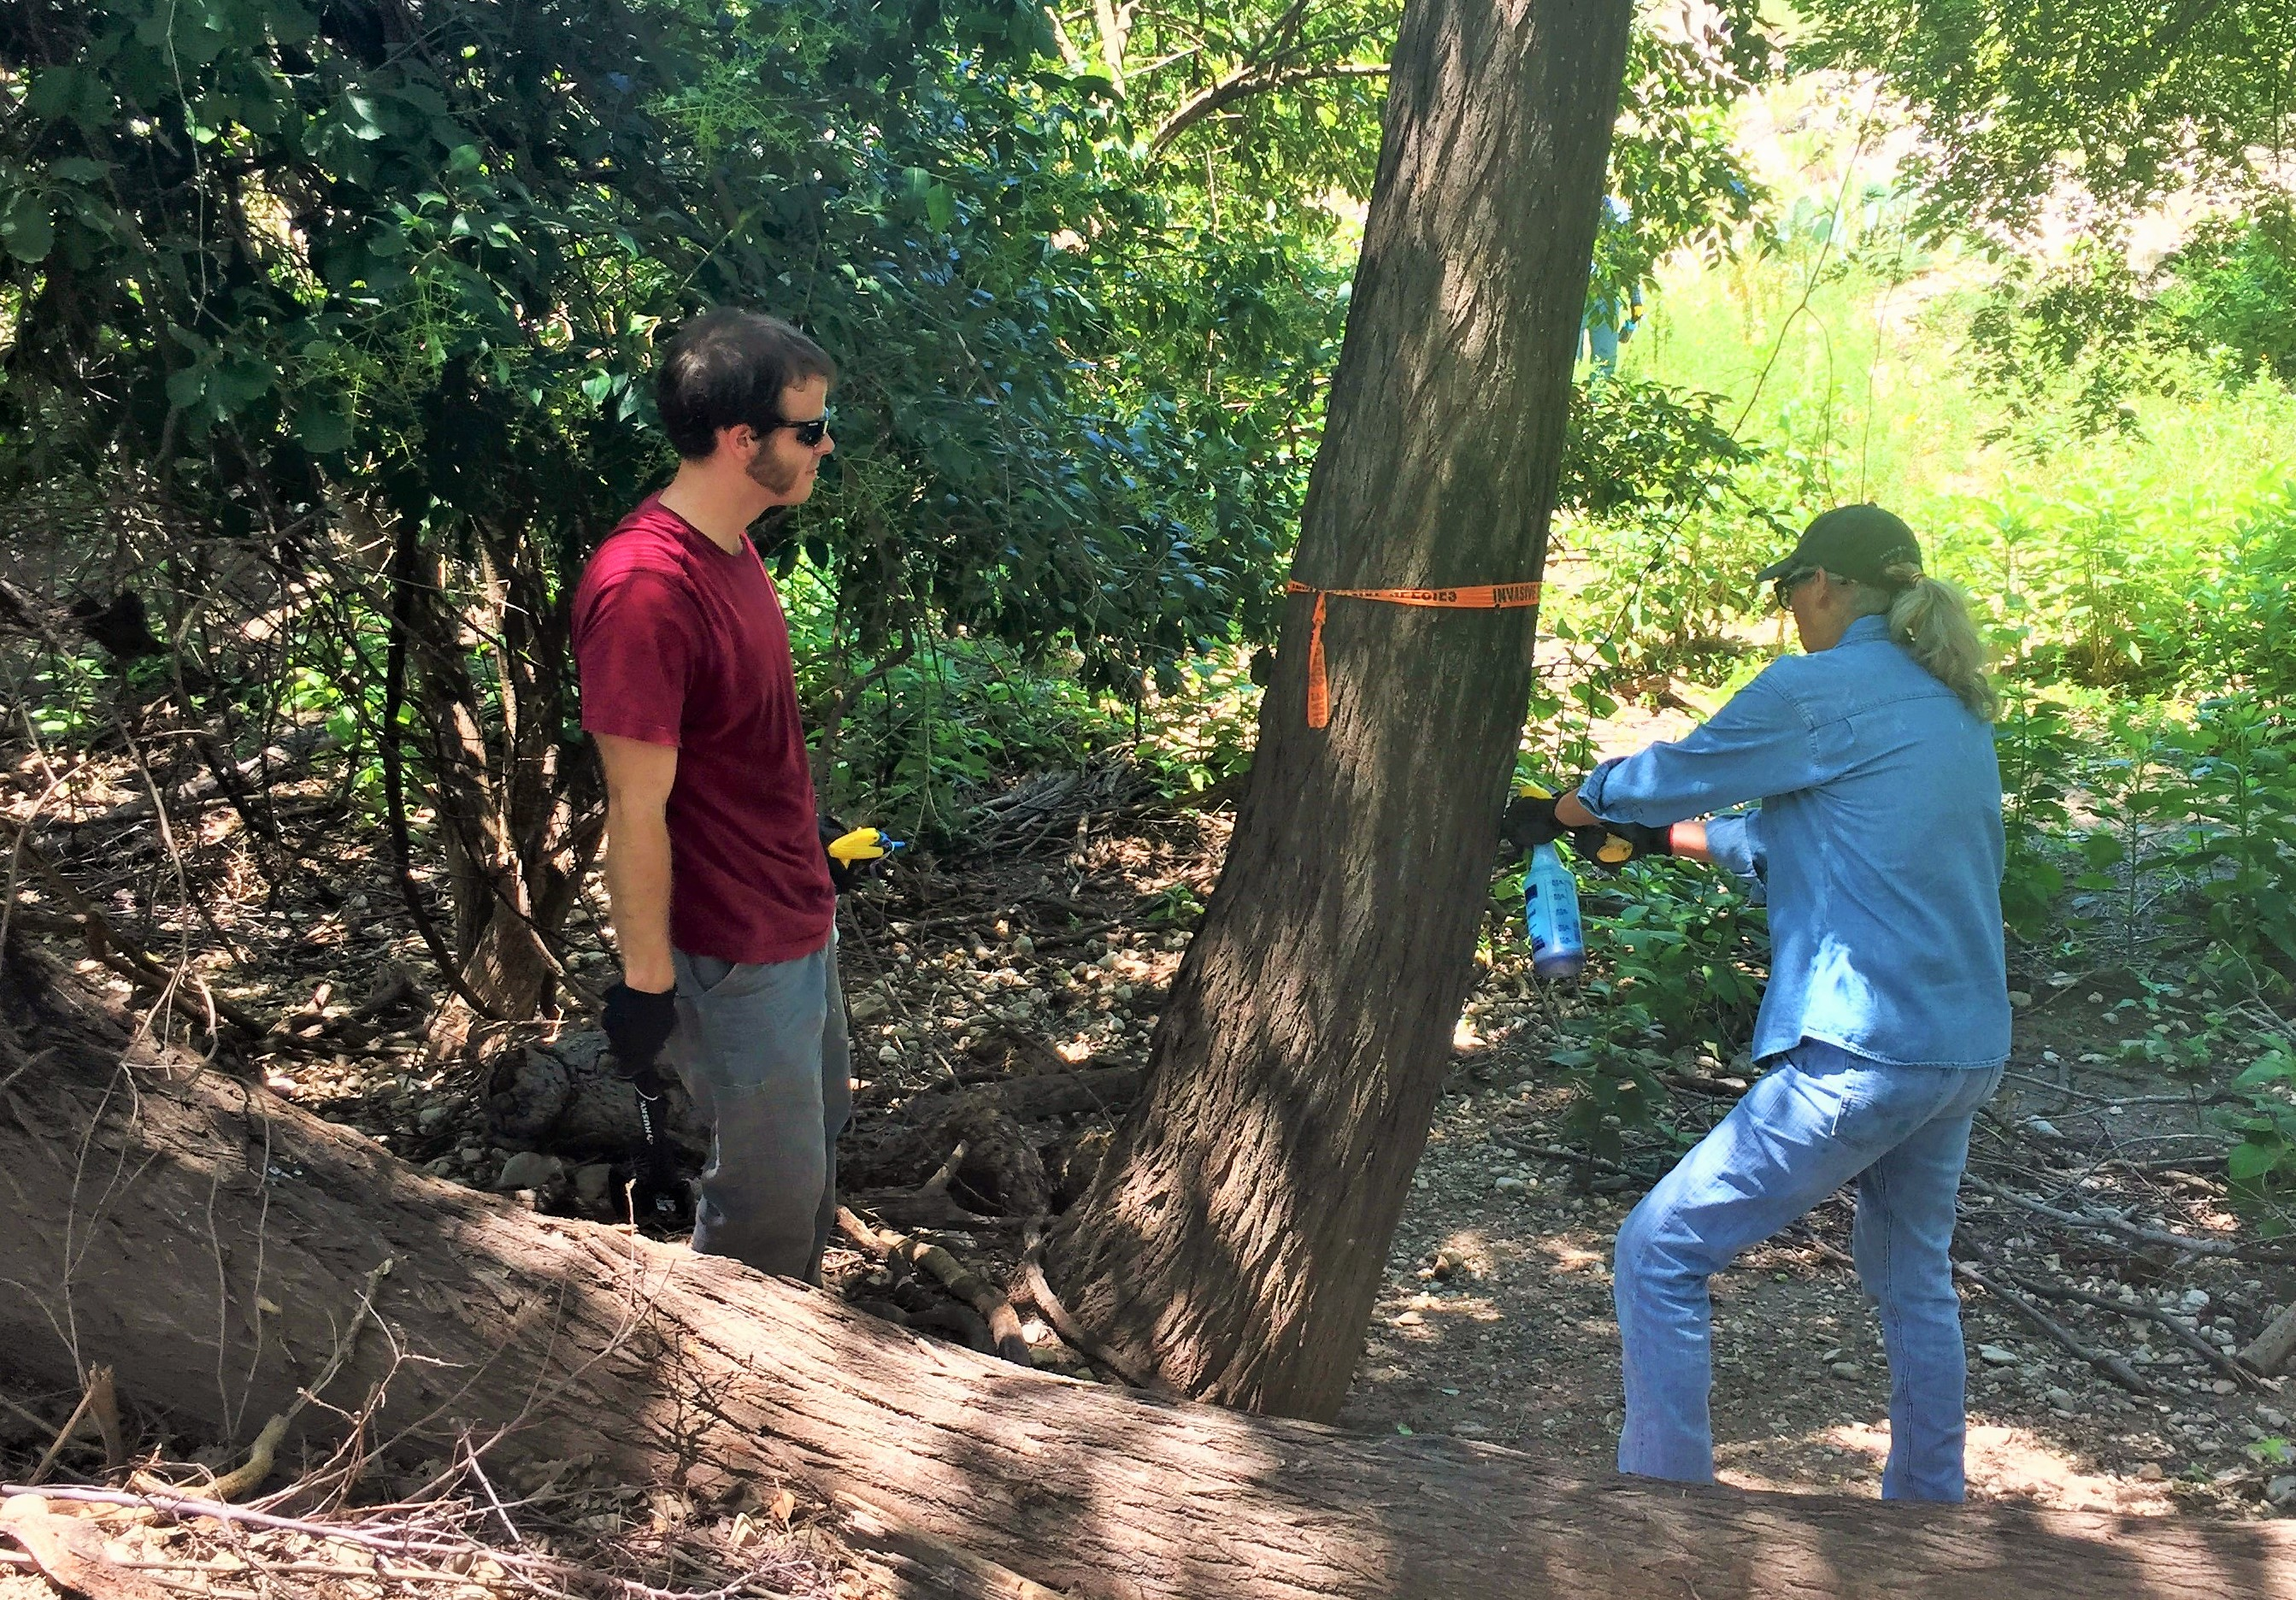 Volunteers and Partners Work to Control Invasive Chinaberry Trees Along Llano River